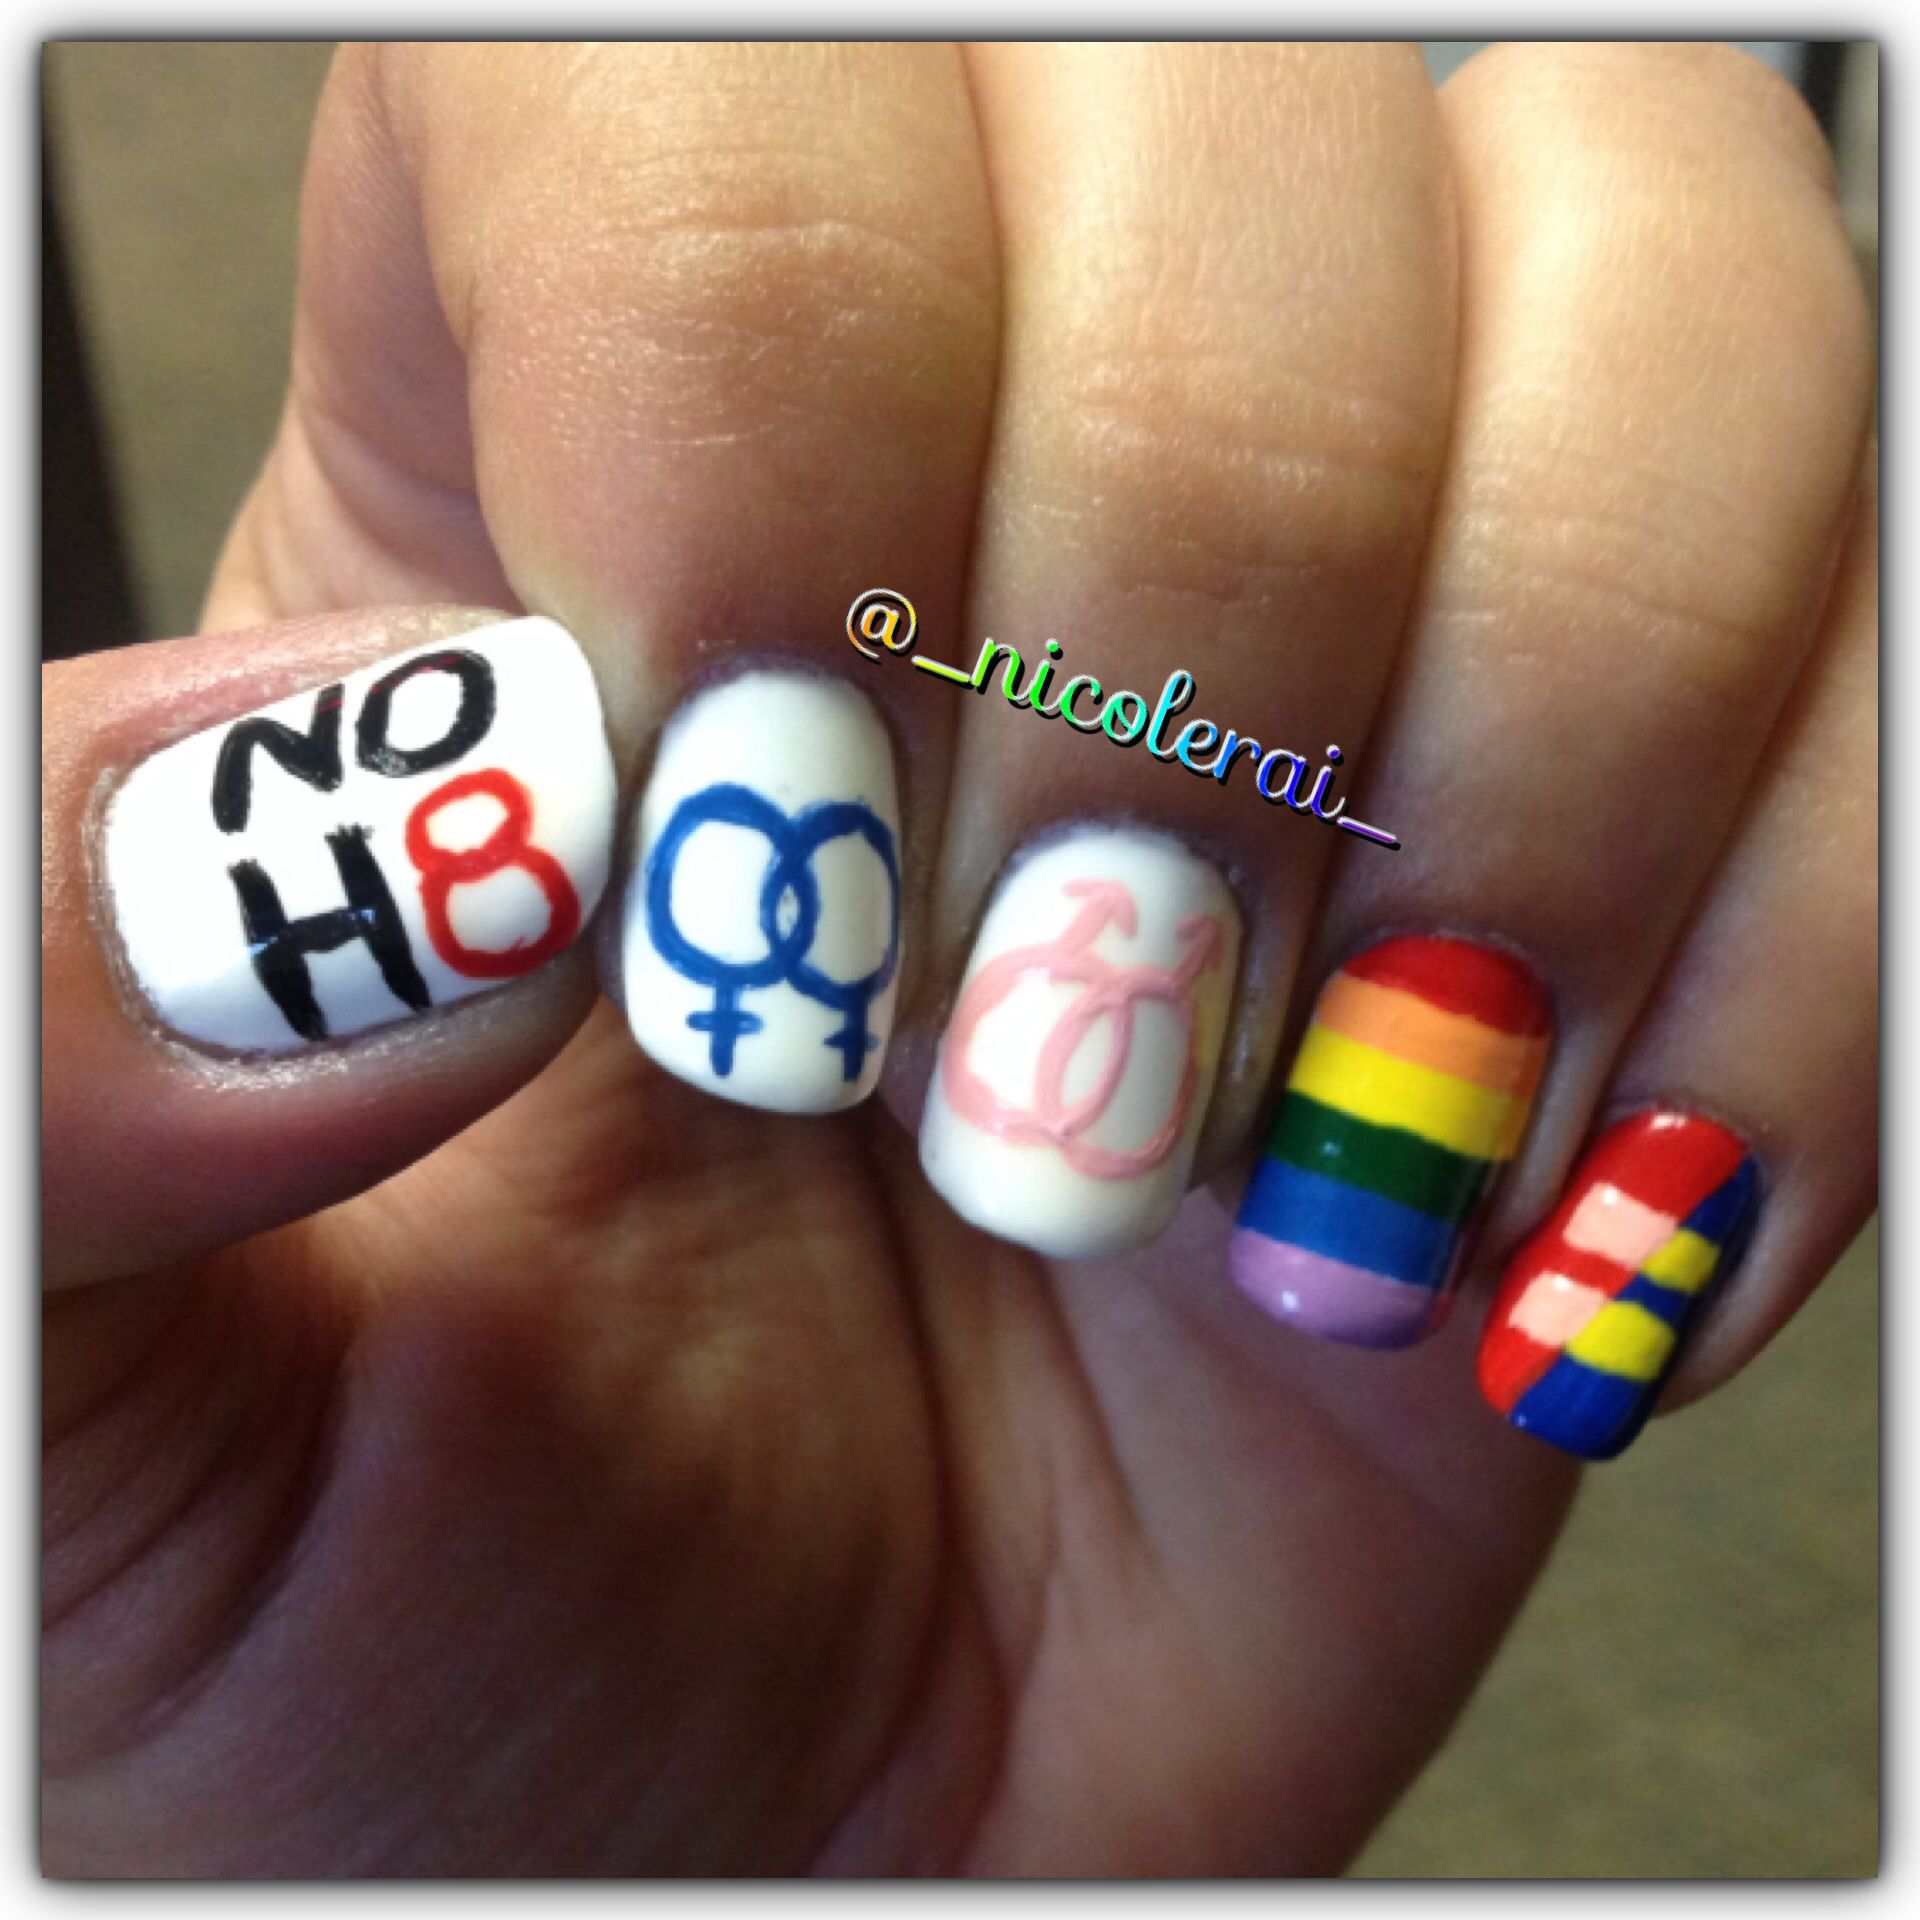 Gay pride nail art for international day against homophobia gay pride nail art for international day against homophobia gaypride nicolerai prinsesfo Image collections